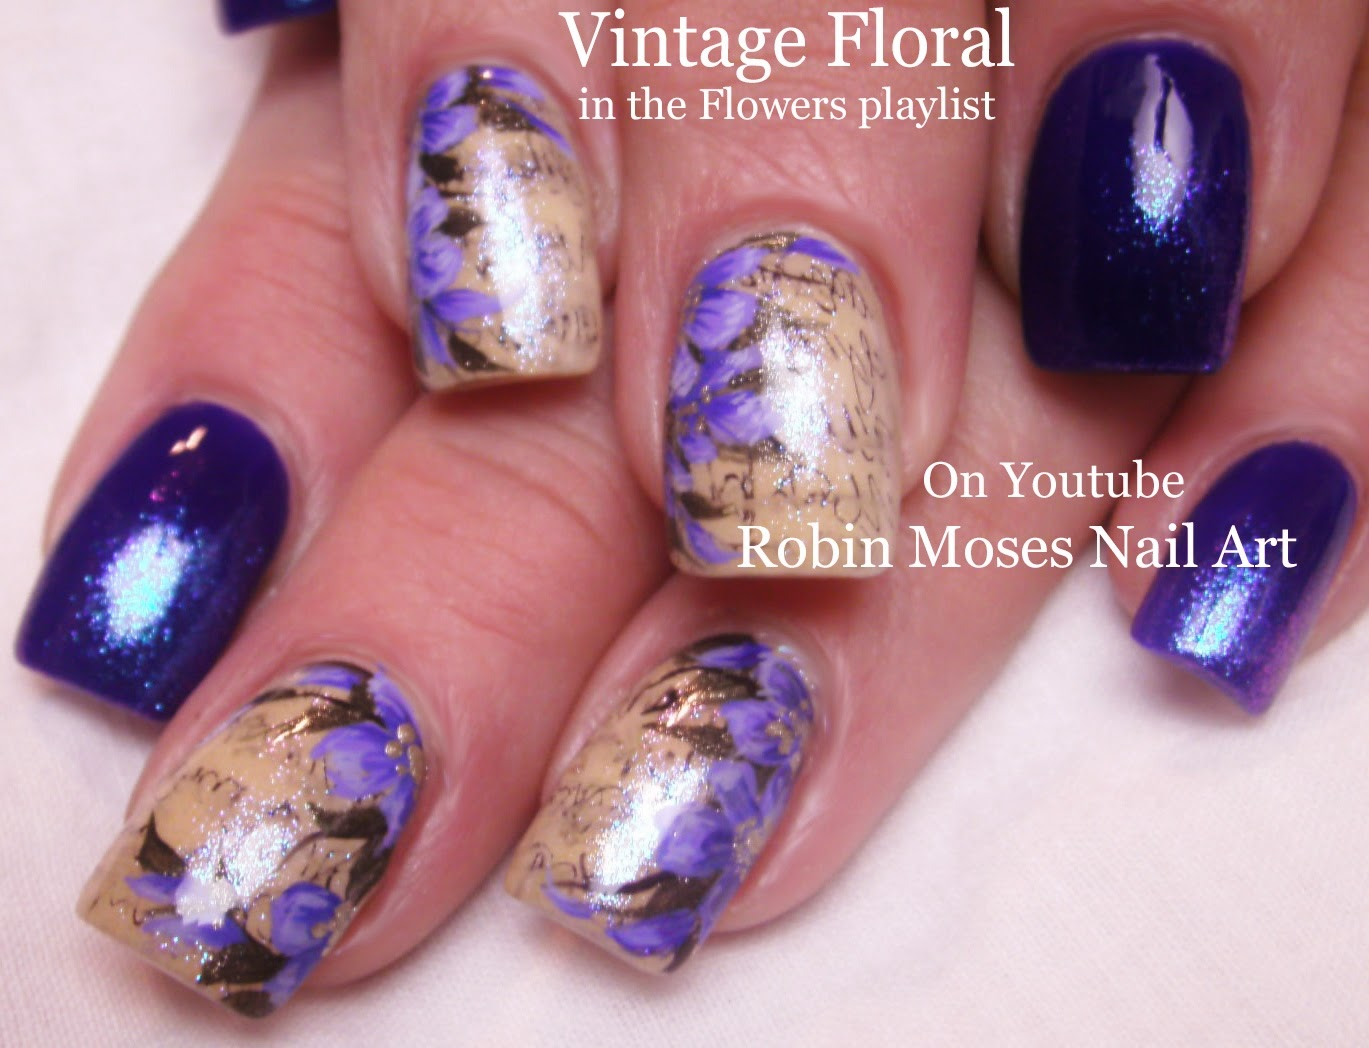 Robin Moses Nail Art: Sharpie pens used for Lavender ...